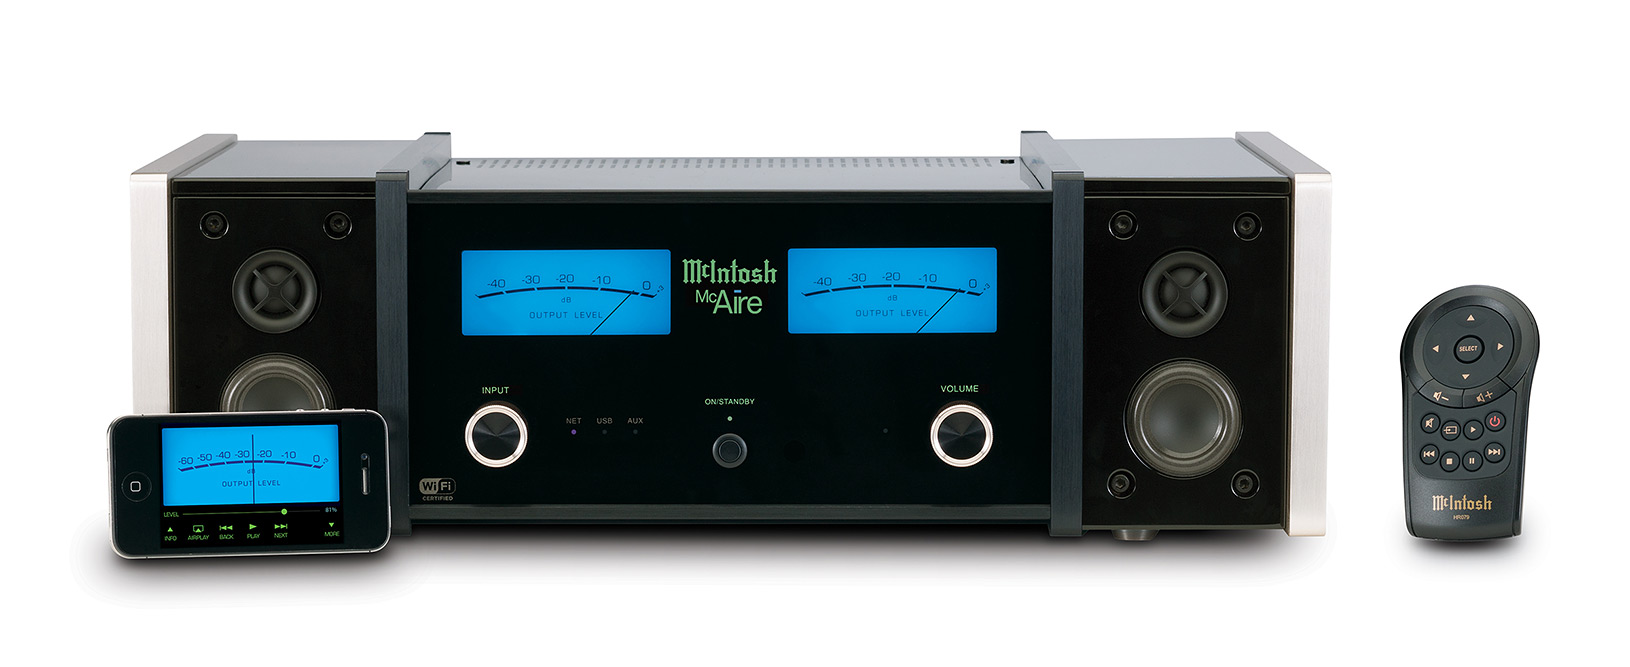 mcintosh-mcaire-stereo-system-11